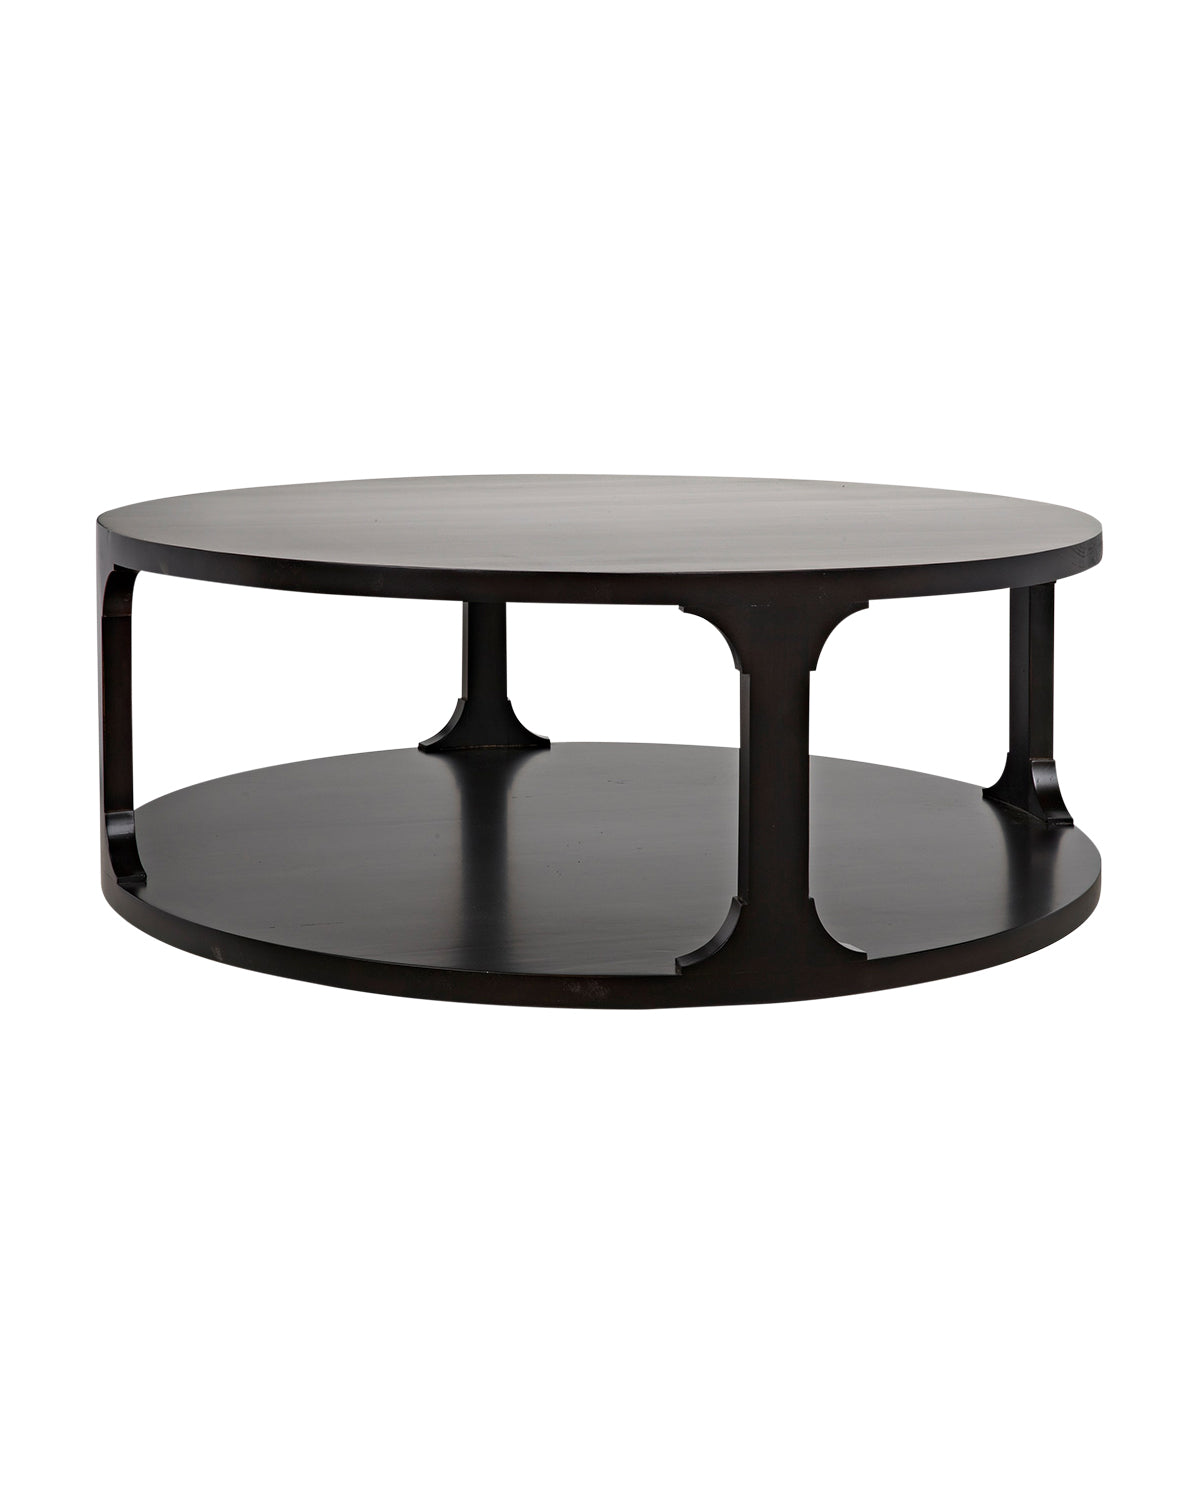 Grady Espresso Coffee Table